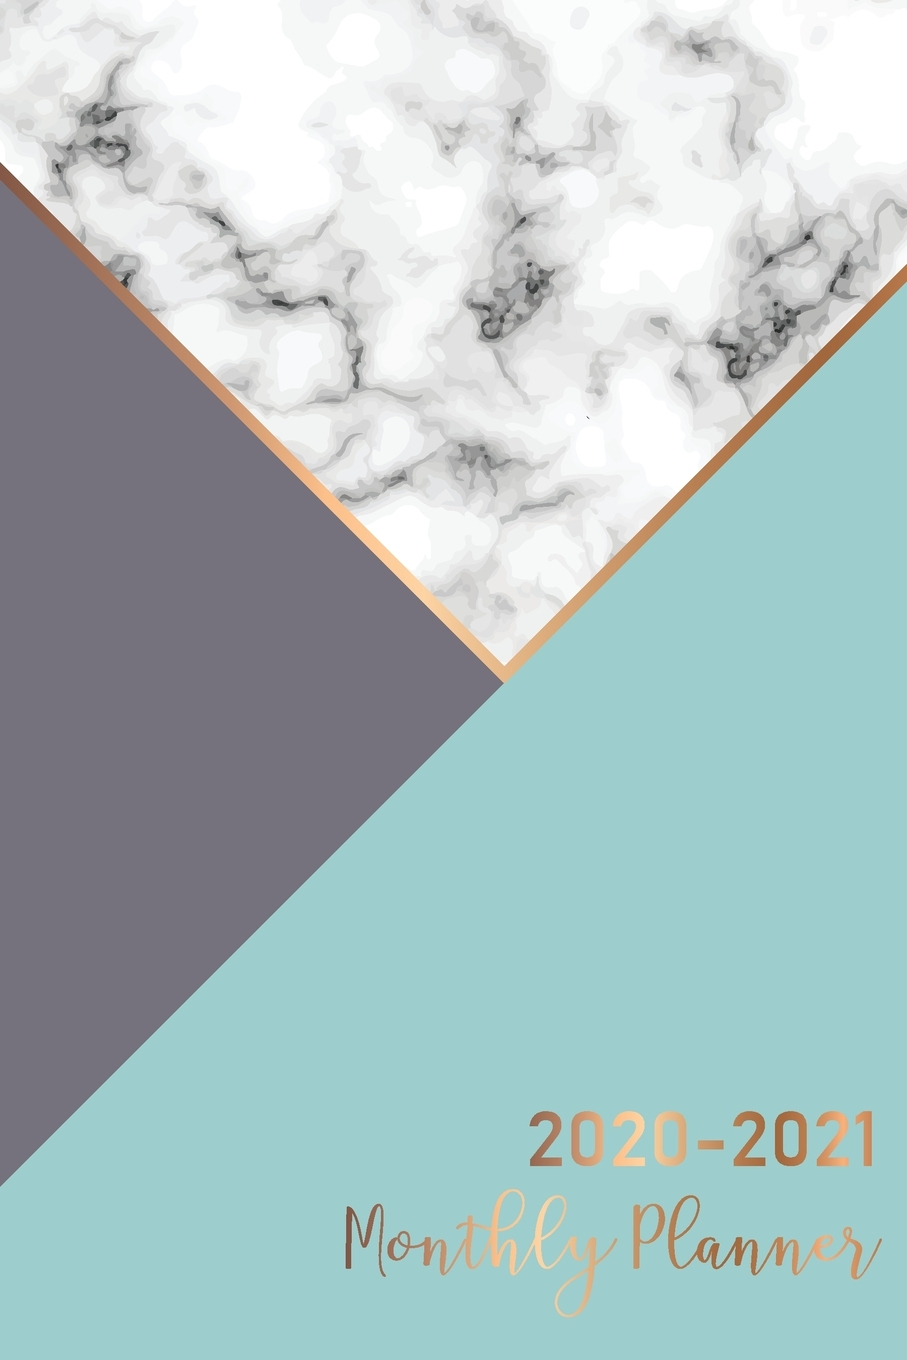 2020-2021 Daily Monthly Calendar Pocket Planner, 24 Months Jan 2020 To Dec  2021: 2020-2021 Monthly Planner: Marble Cover - 2 Year Calendar 2020-2021 regarding 2021-2021: Two-Year Monthly Pocket